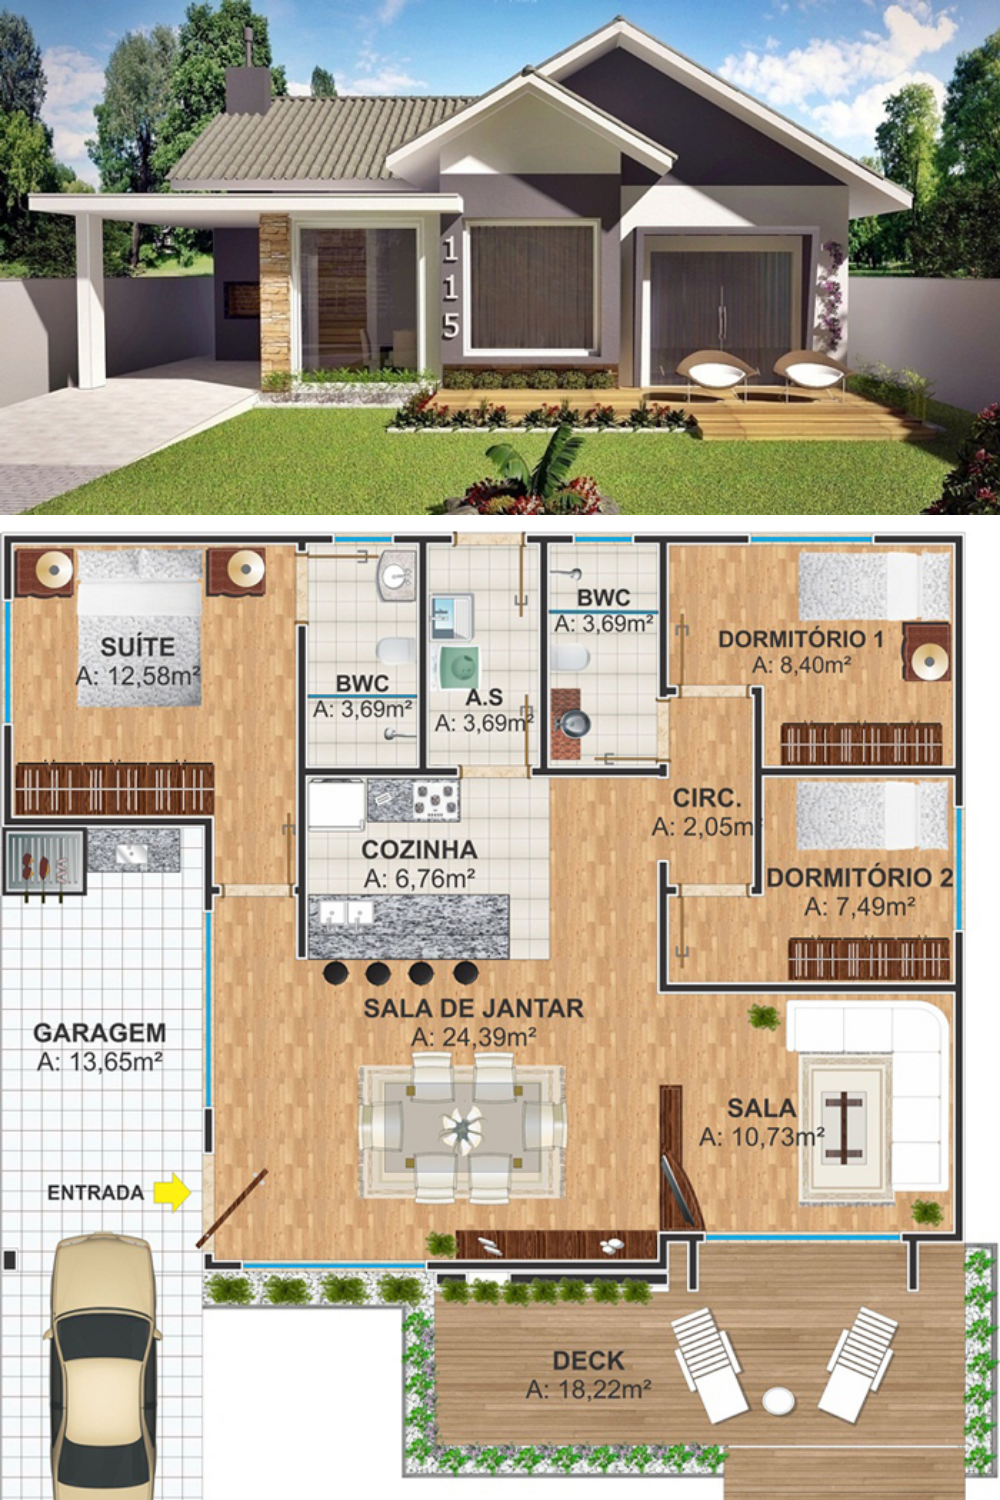 American Style 3 Bedroom House Plan House Plans House Layouts Bedroom House Plans